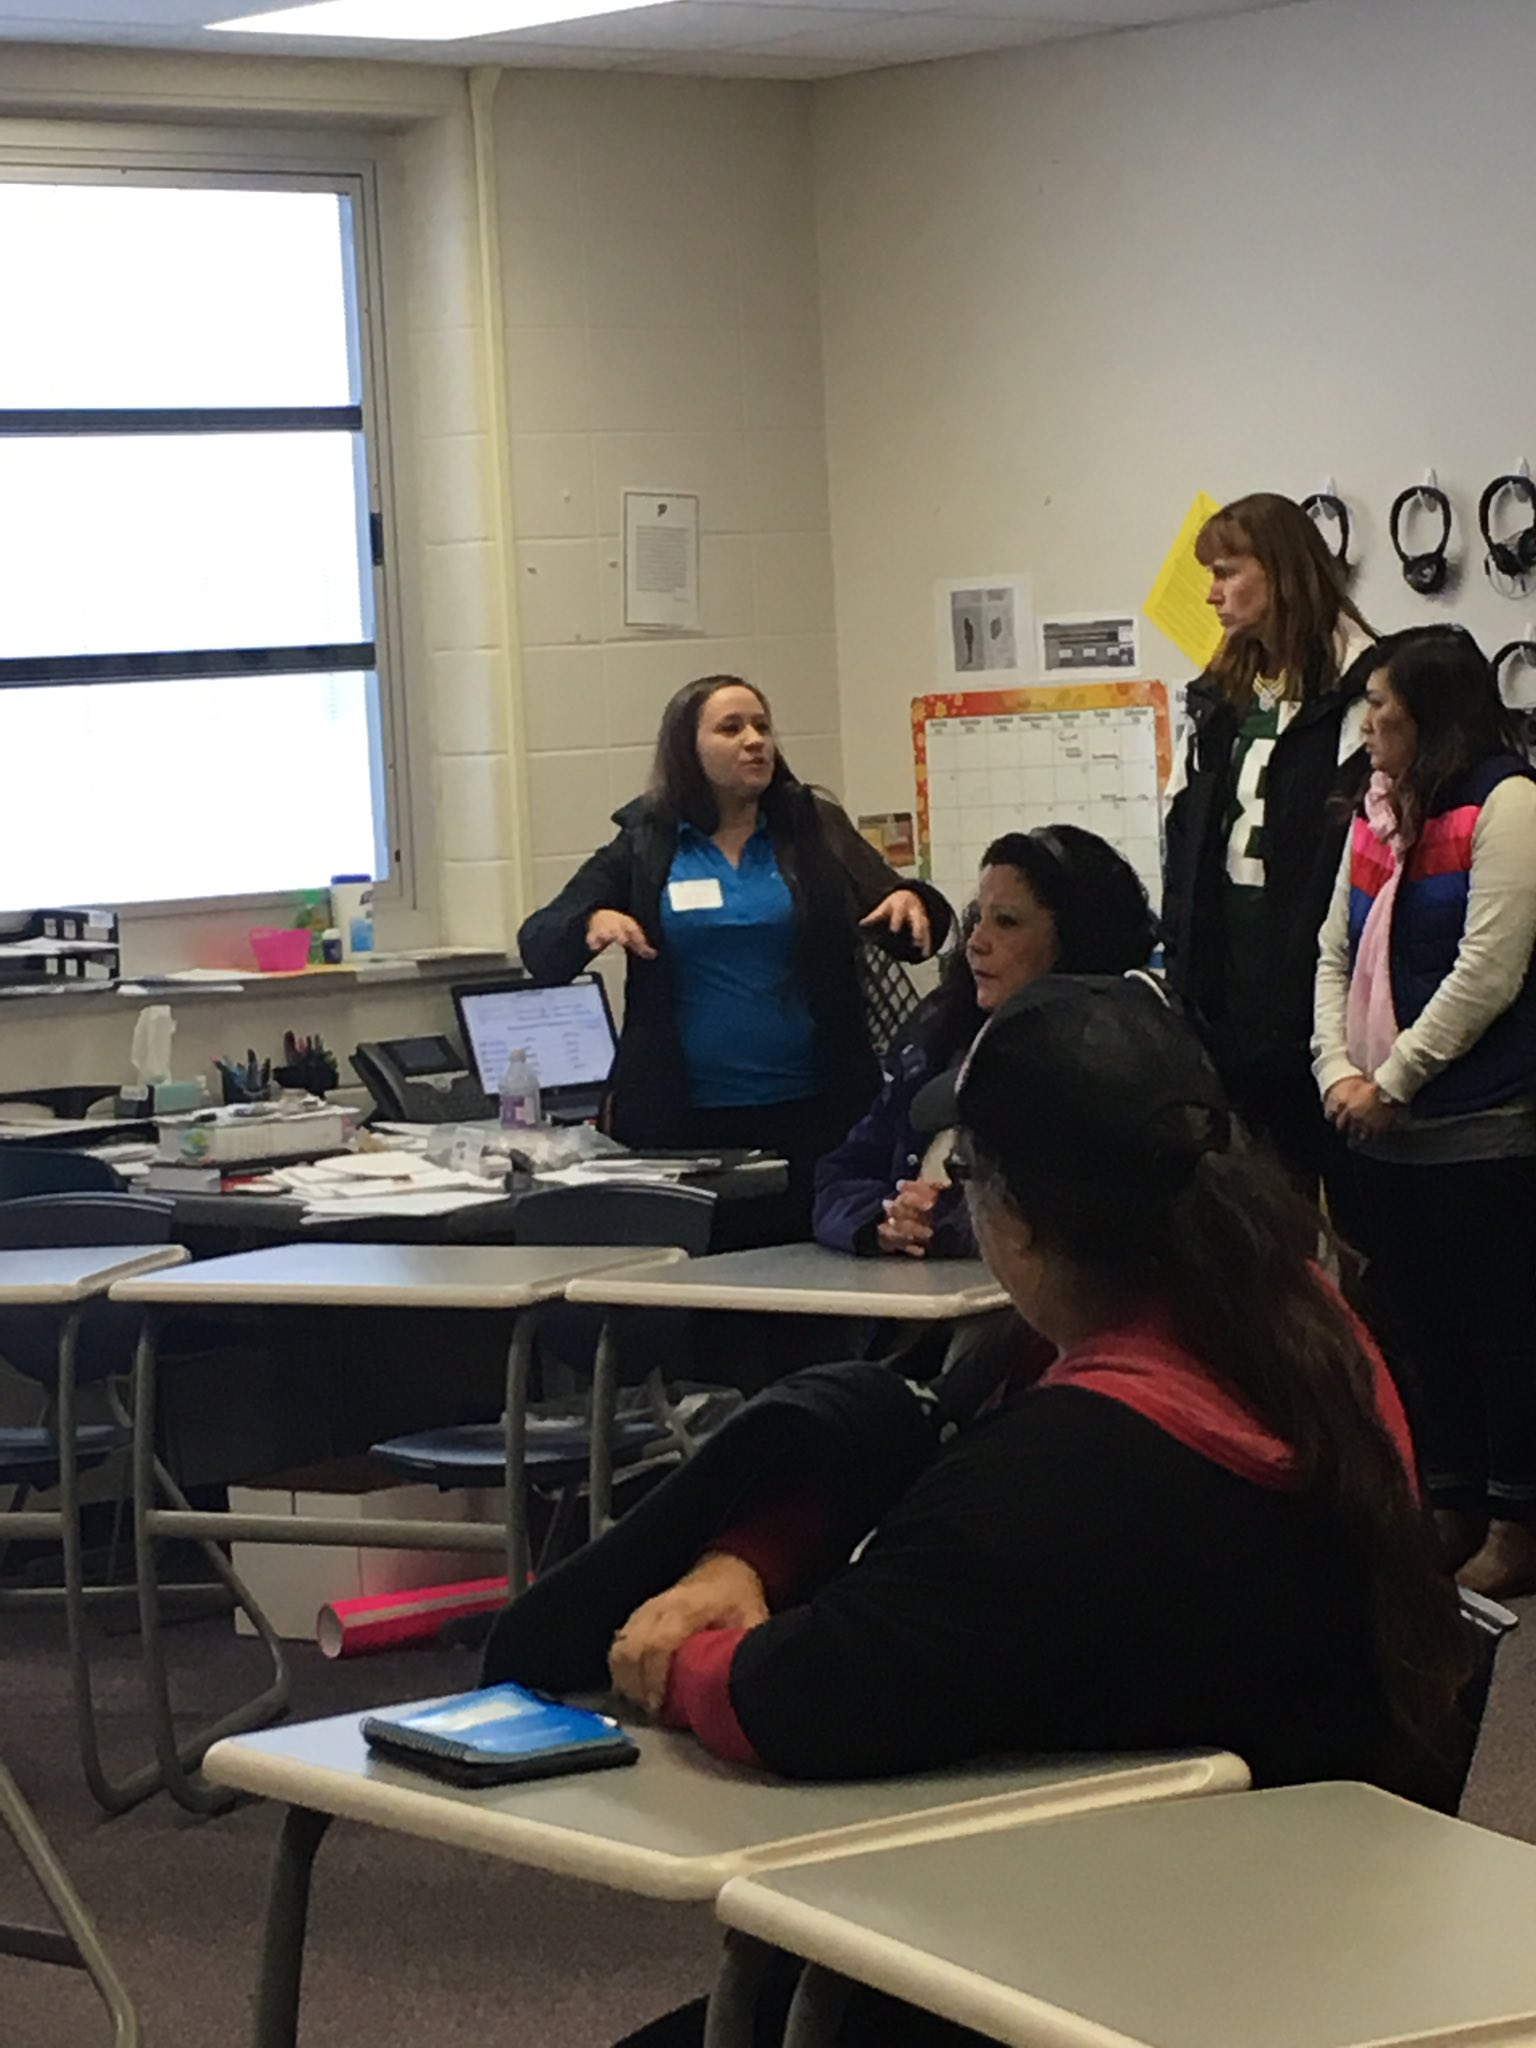 Today the Native American Language Workshop participants came and toured our Oneida Language Program. #Raiderstrong. @WisDPIais https://t.co/LNT6EyRM8q